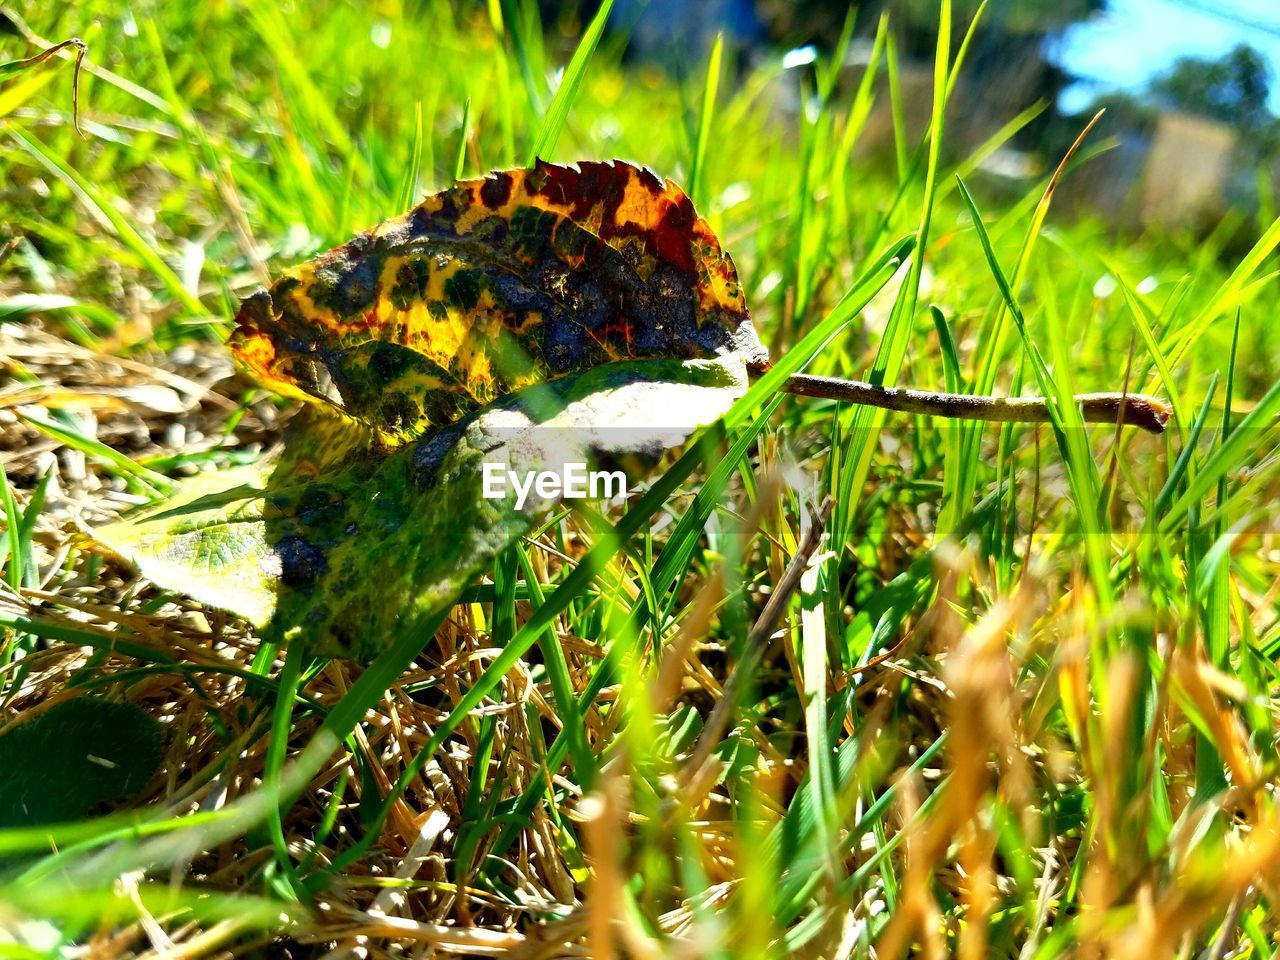 nature, grass, insect, animals in the wild, one animal, growth, animal themes, wildlife, beauty in nature, green color, plant, no people, outdoors, field, close-up, fragility, day, butterfly - insect, flower, freshness